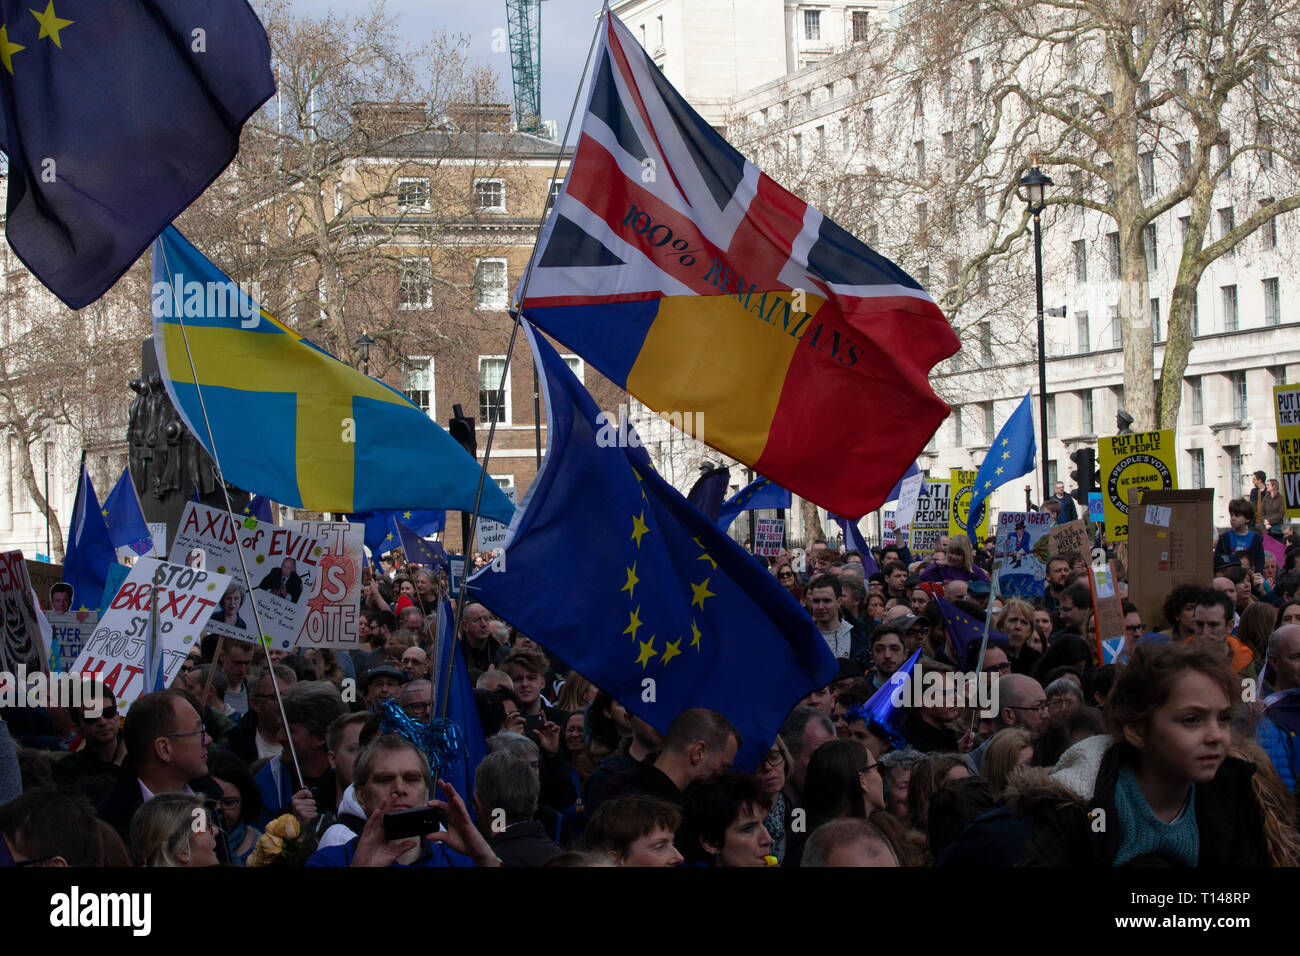 London, UK. 23rd March, 2019.  The Put it to the People March in London: people with home-made placards callling for a People's Vote march past the gates of Downing Street on Whitehall. Credit: Anna Watson/Alamy Live News - Stock Image